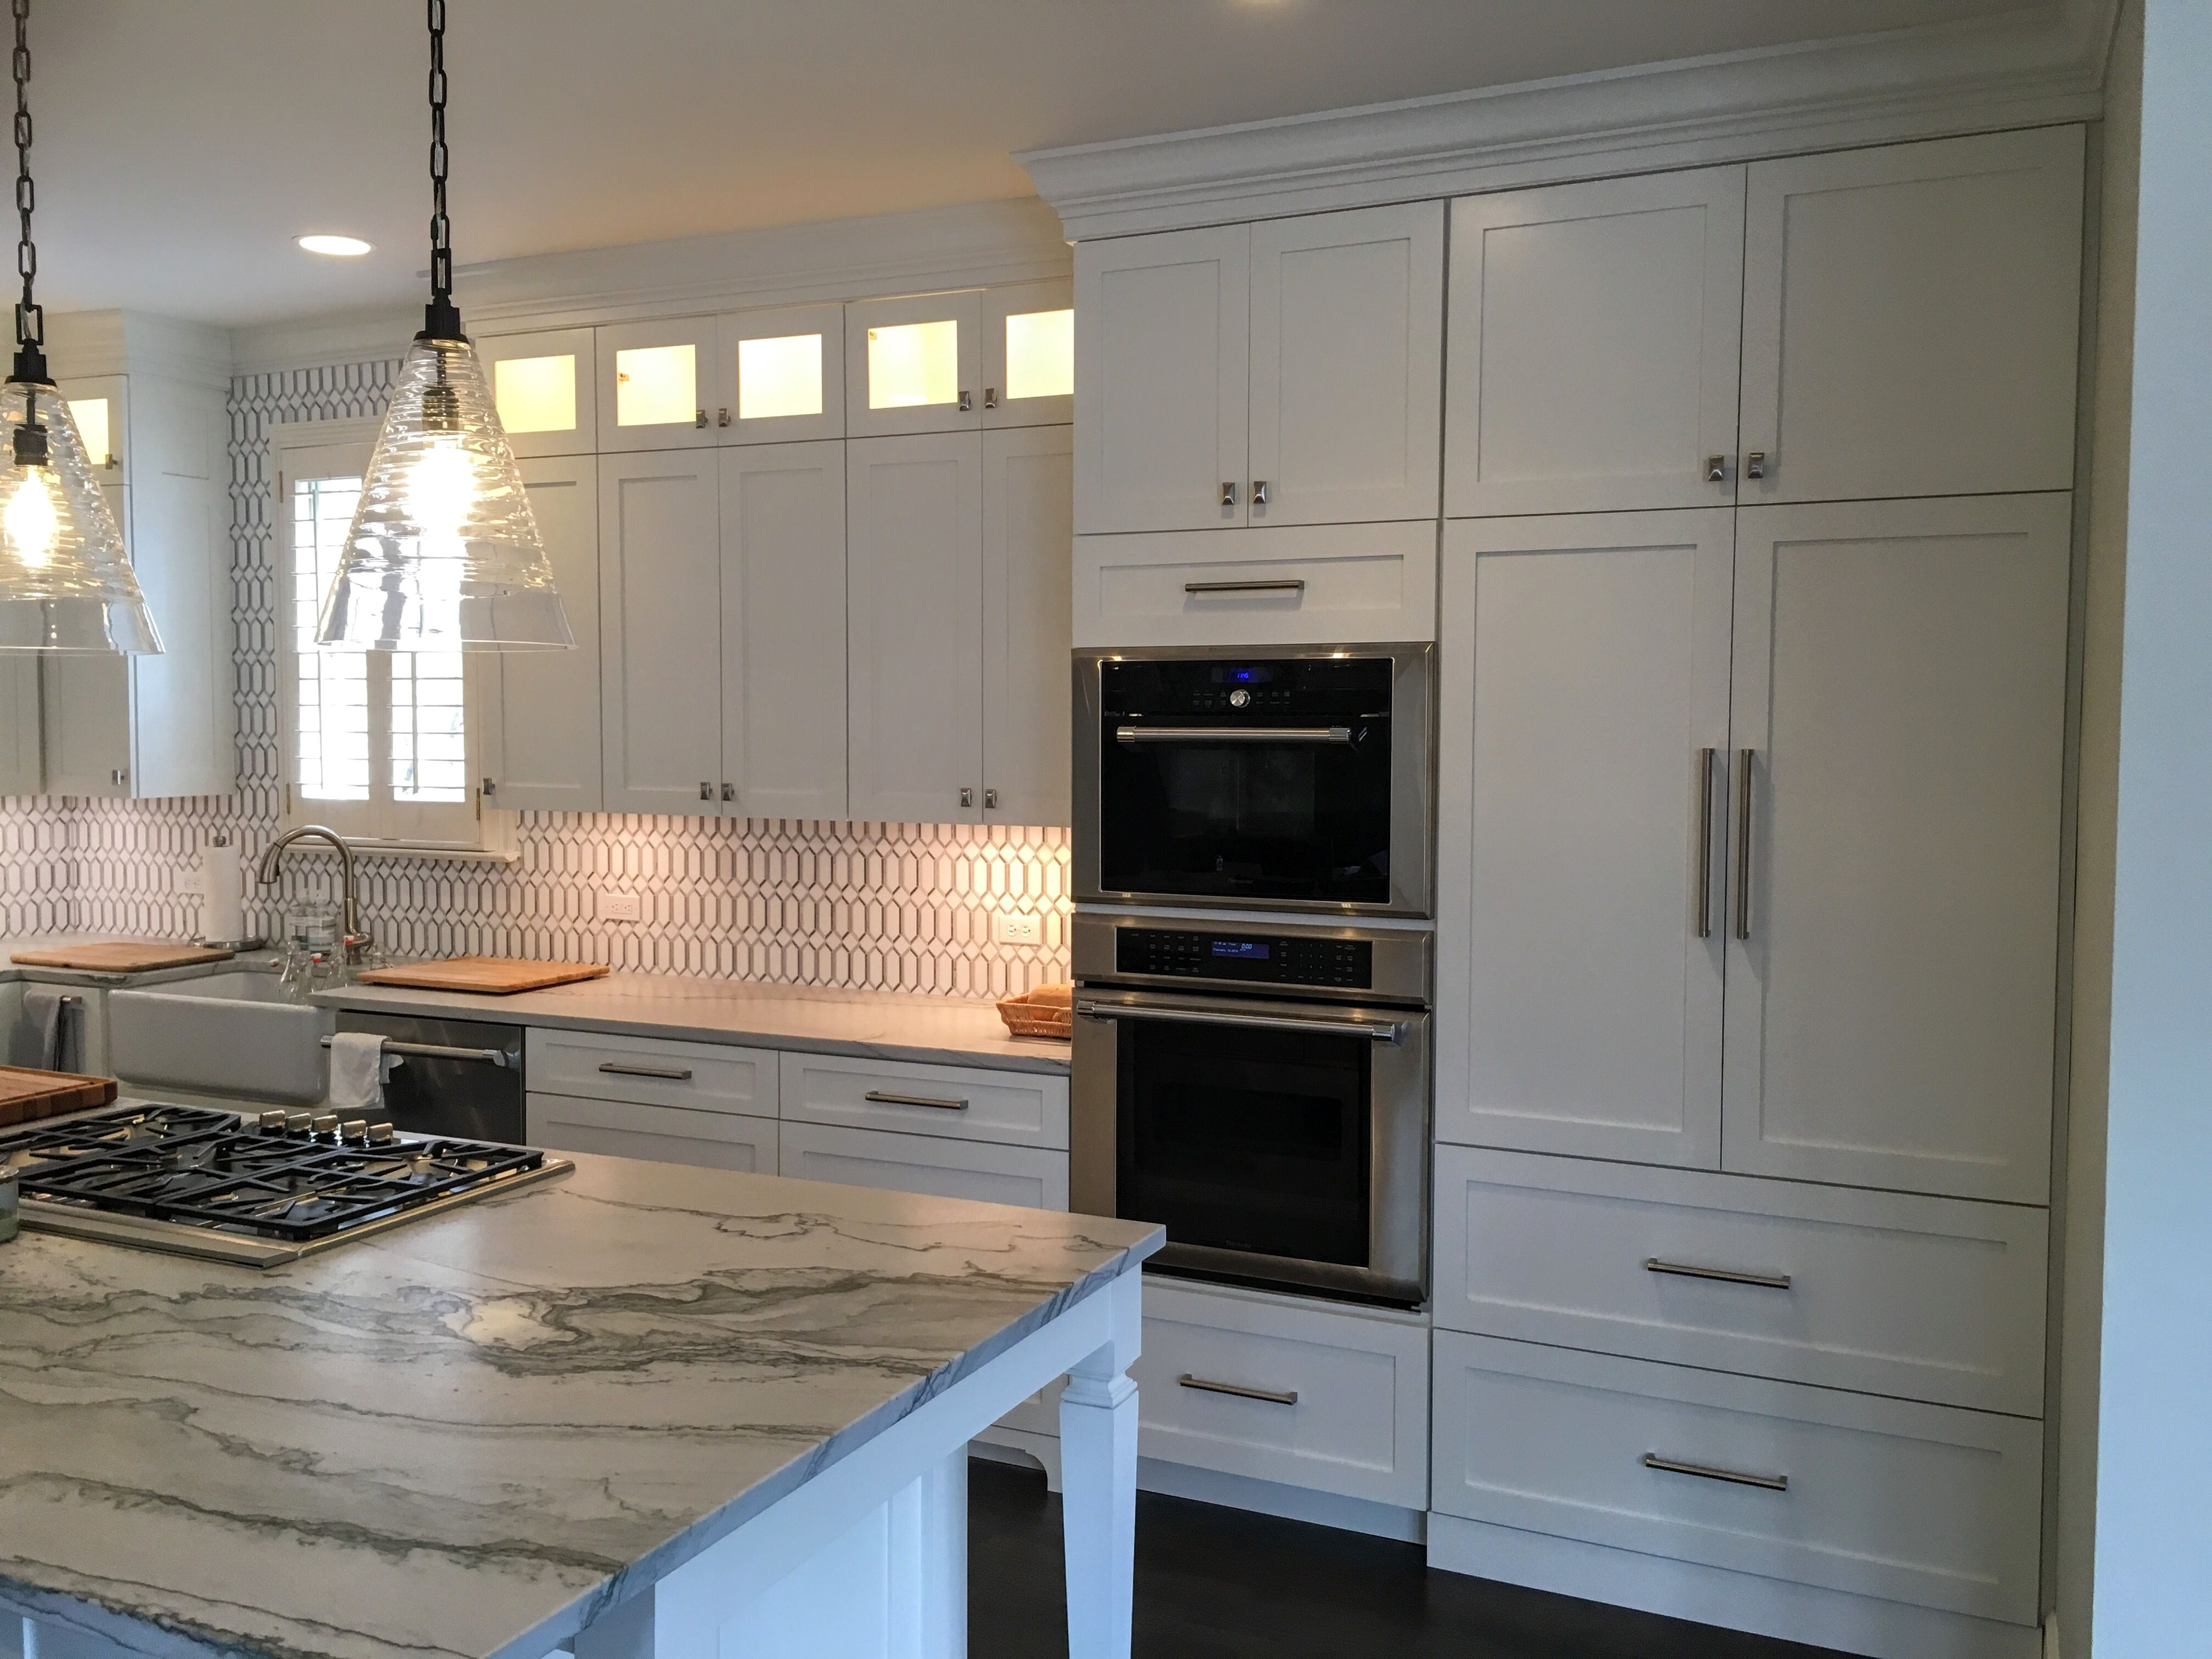 Shaker Style Full Overlay Sherwin Williams White Dove Lacquer Glass Upper Doors Island With Post Legs Custom Glass Used Kitchen Cabinets Cabinets For Sale